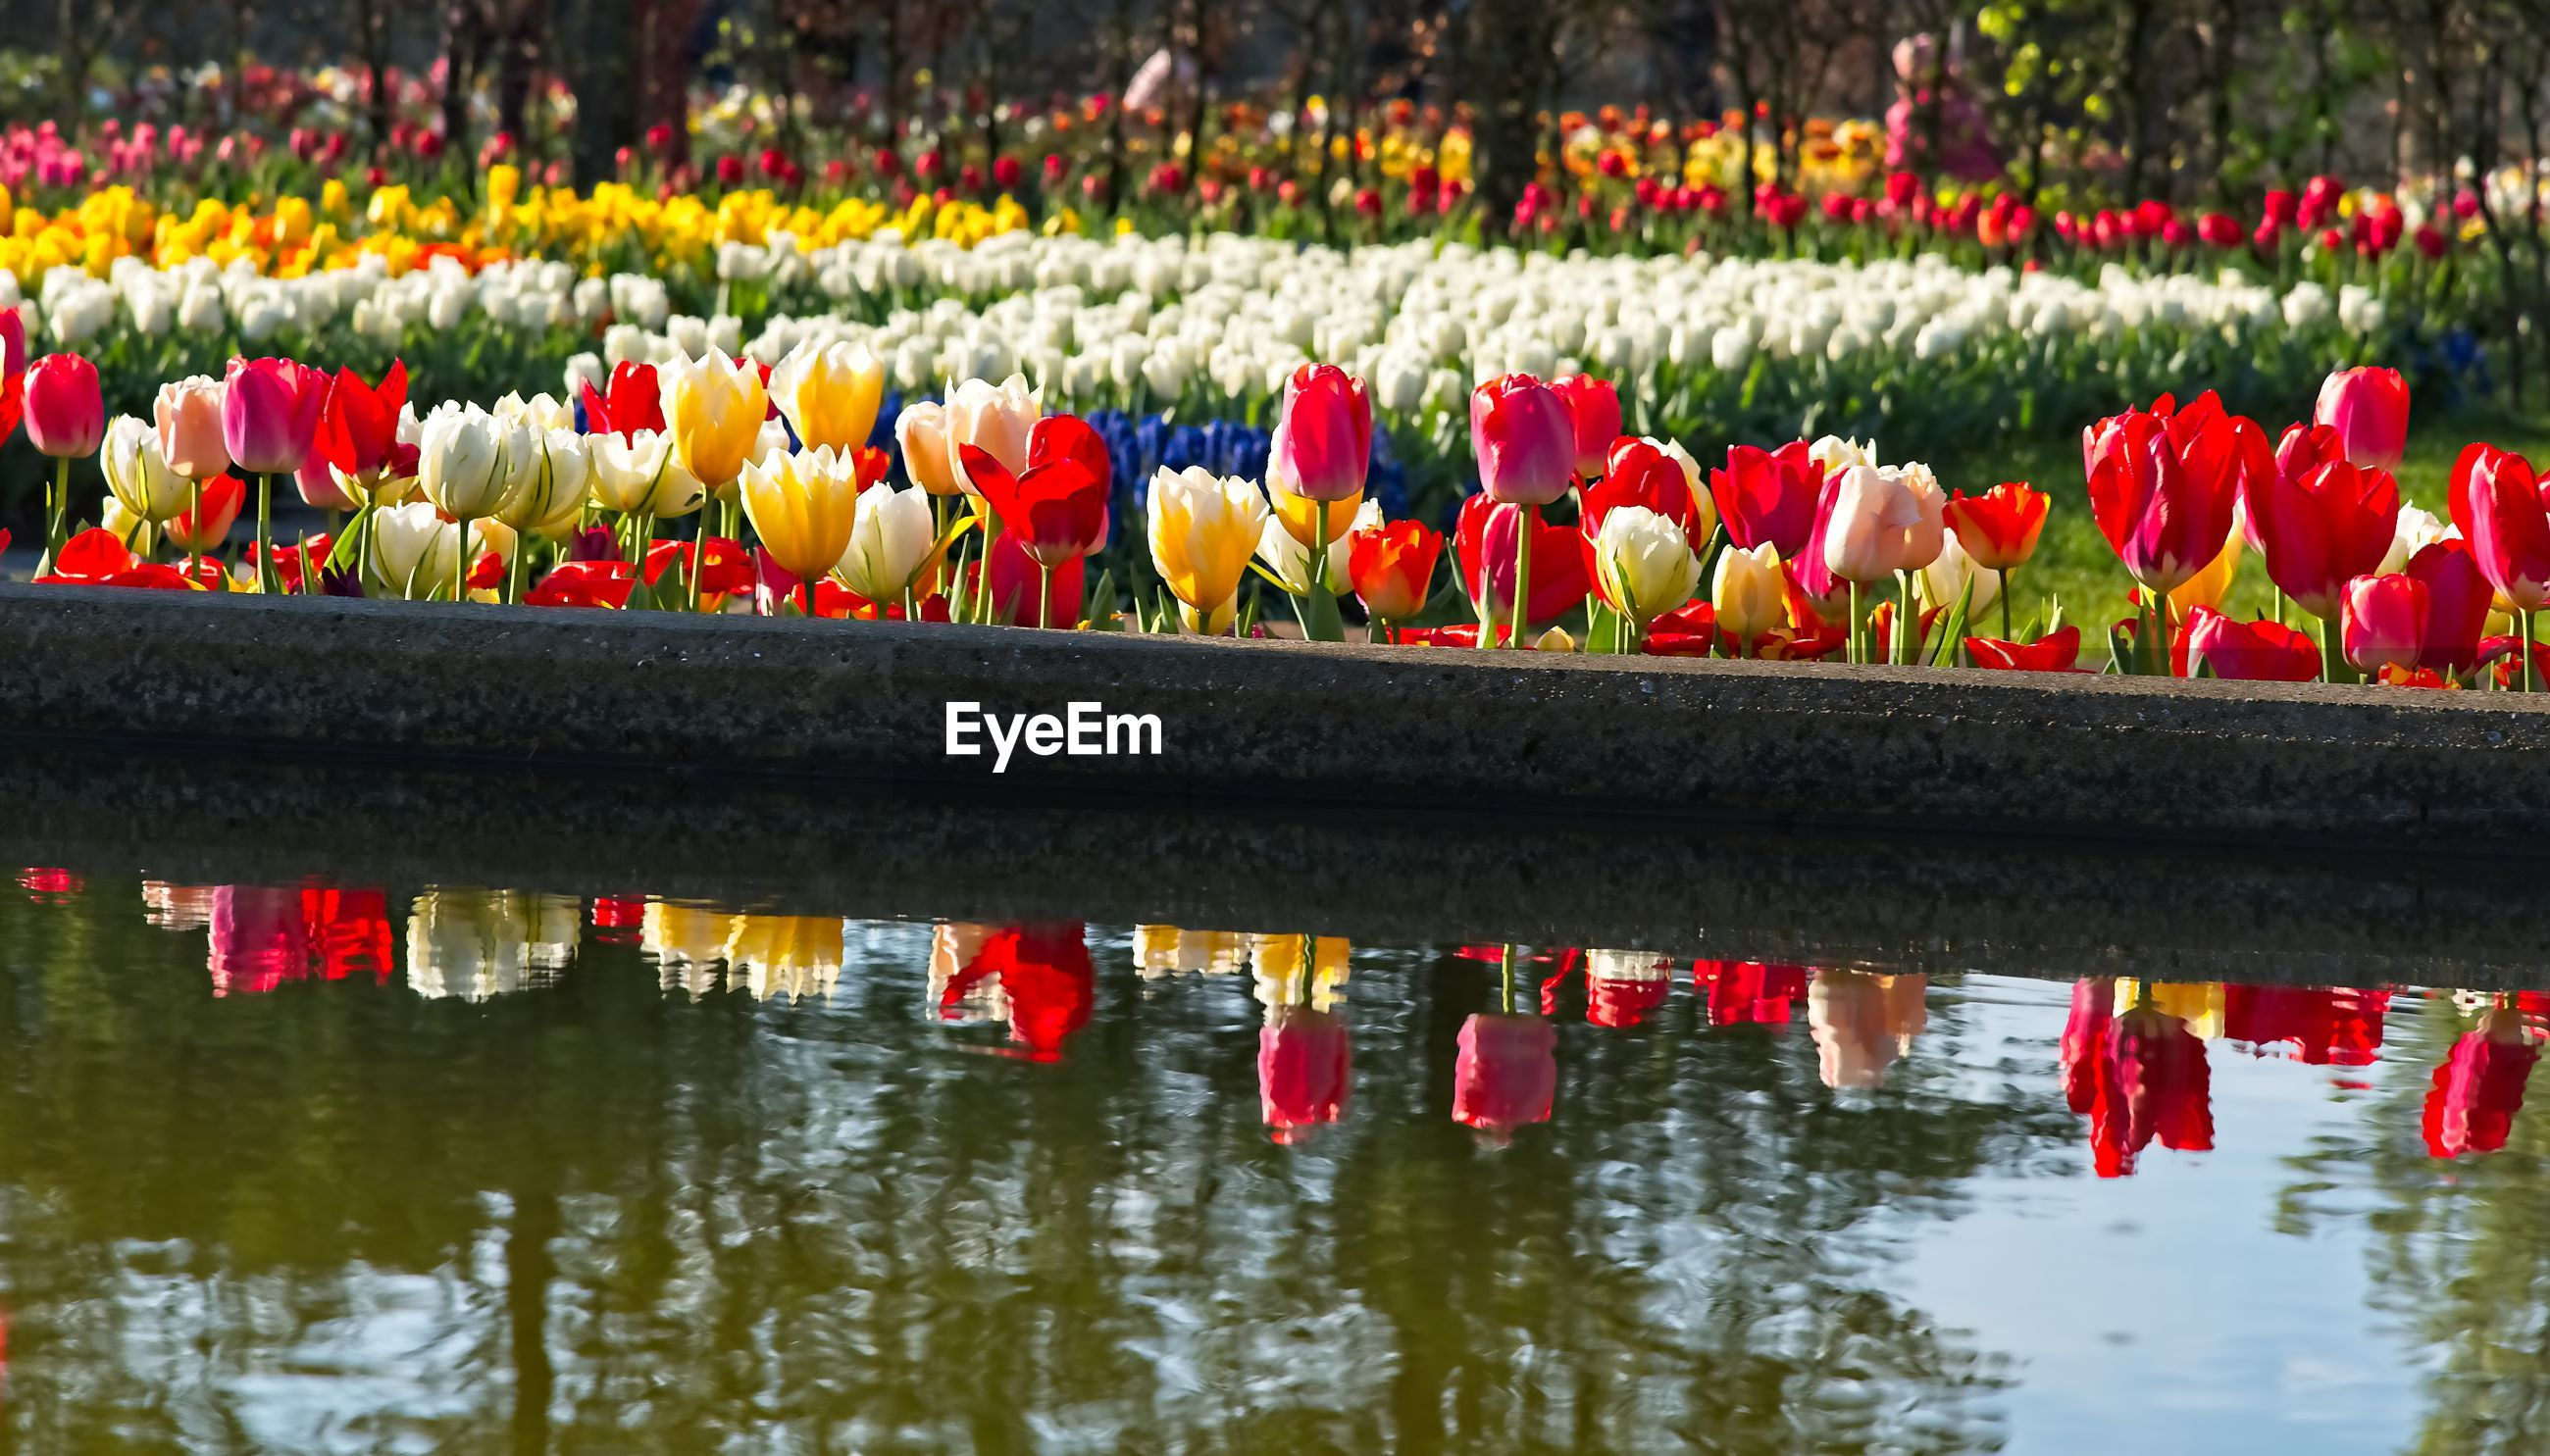 MULTI COLORED TULIPS IN LAKE WITH RED WATER